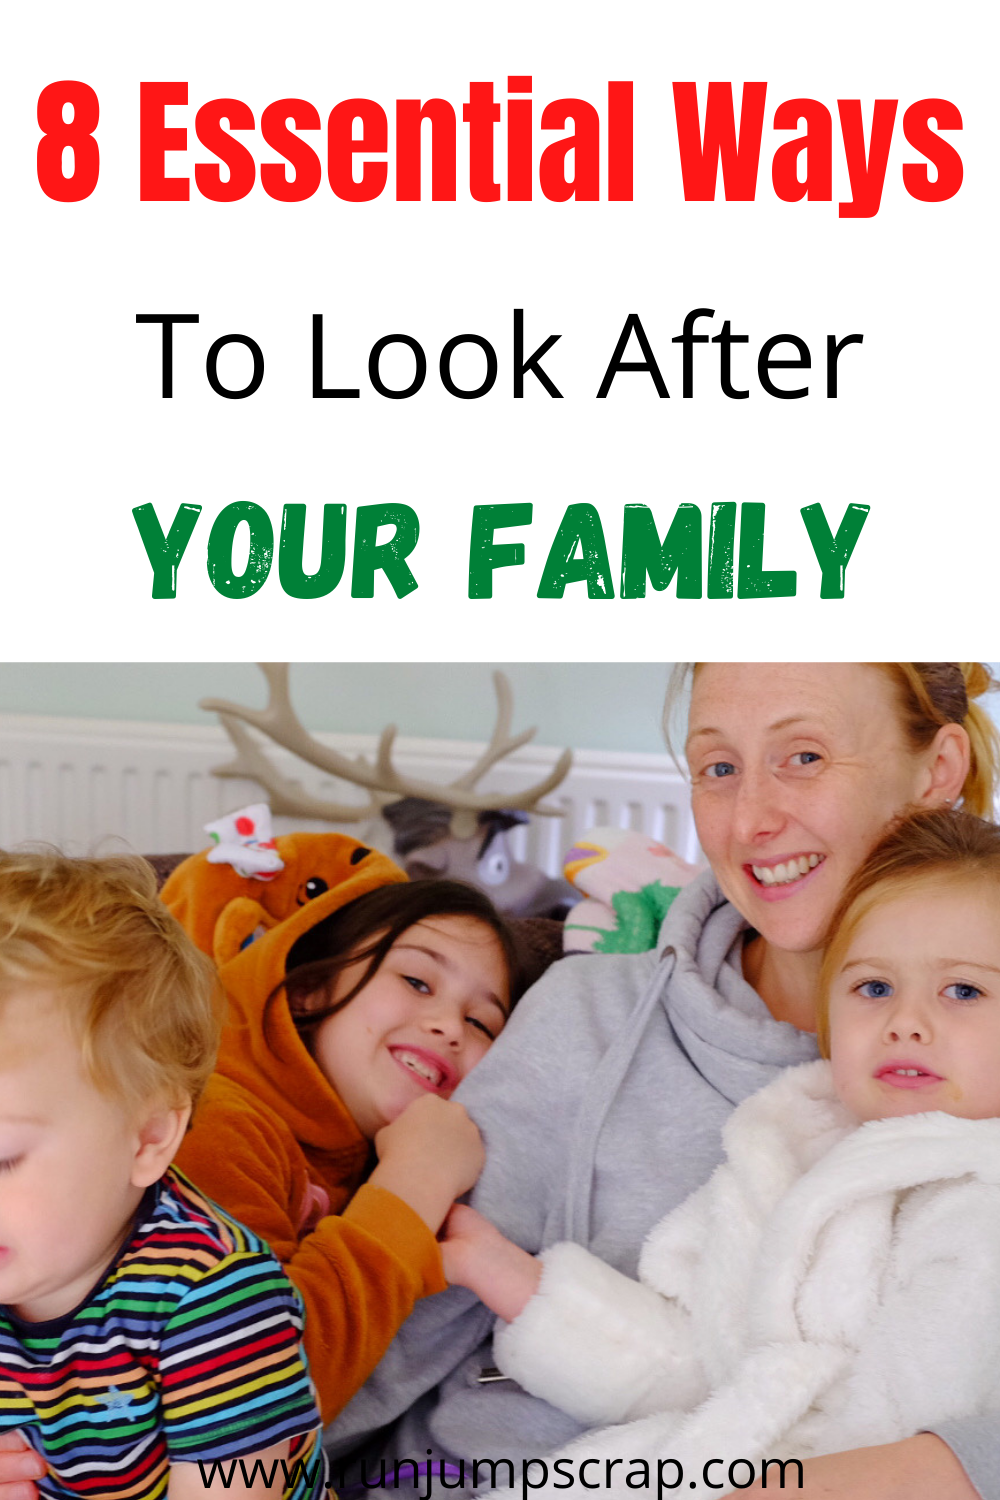 ways to look after your family